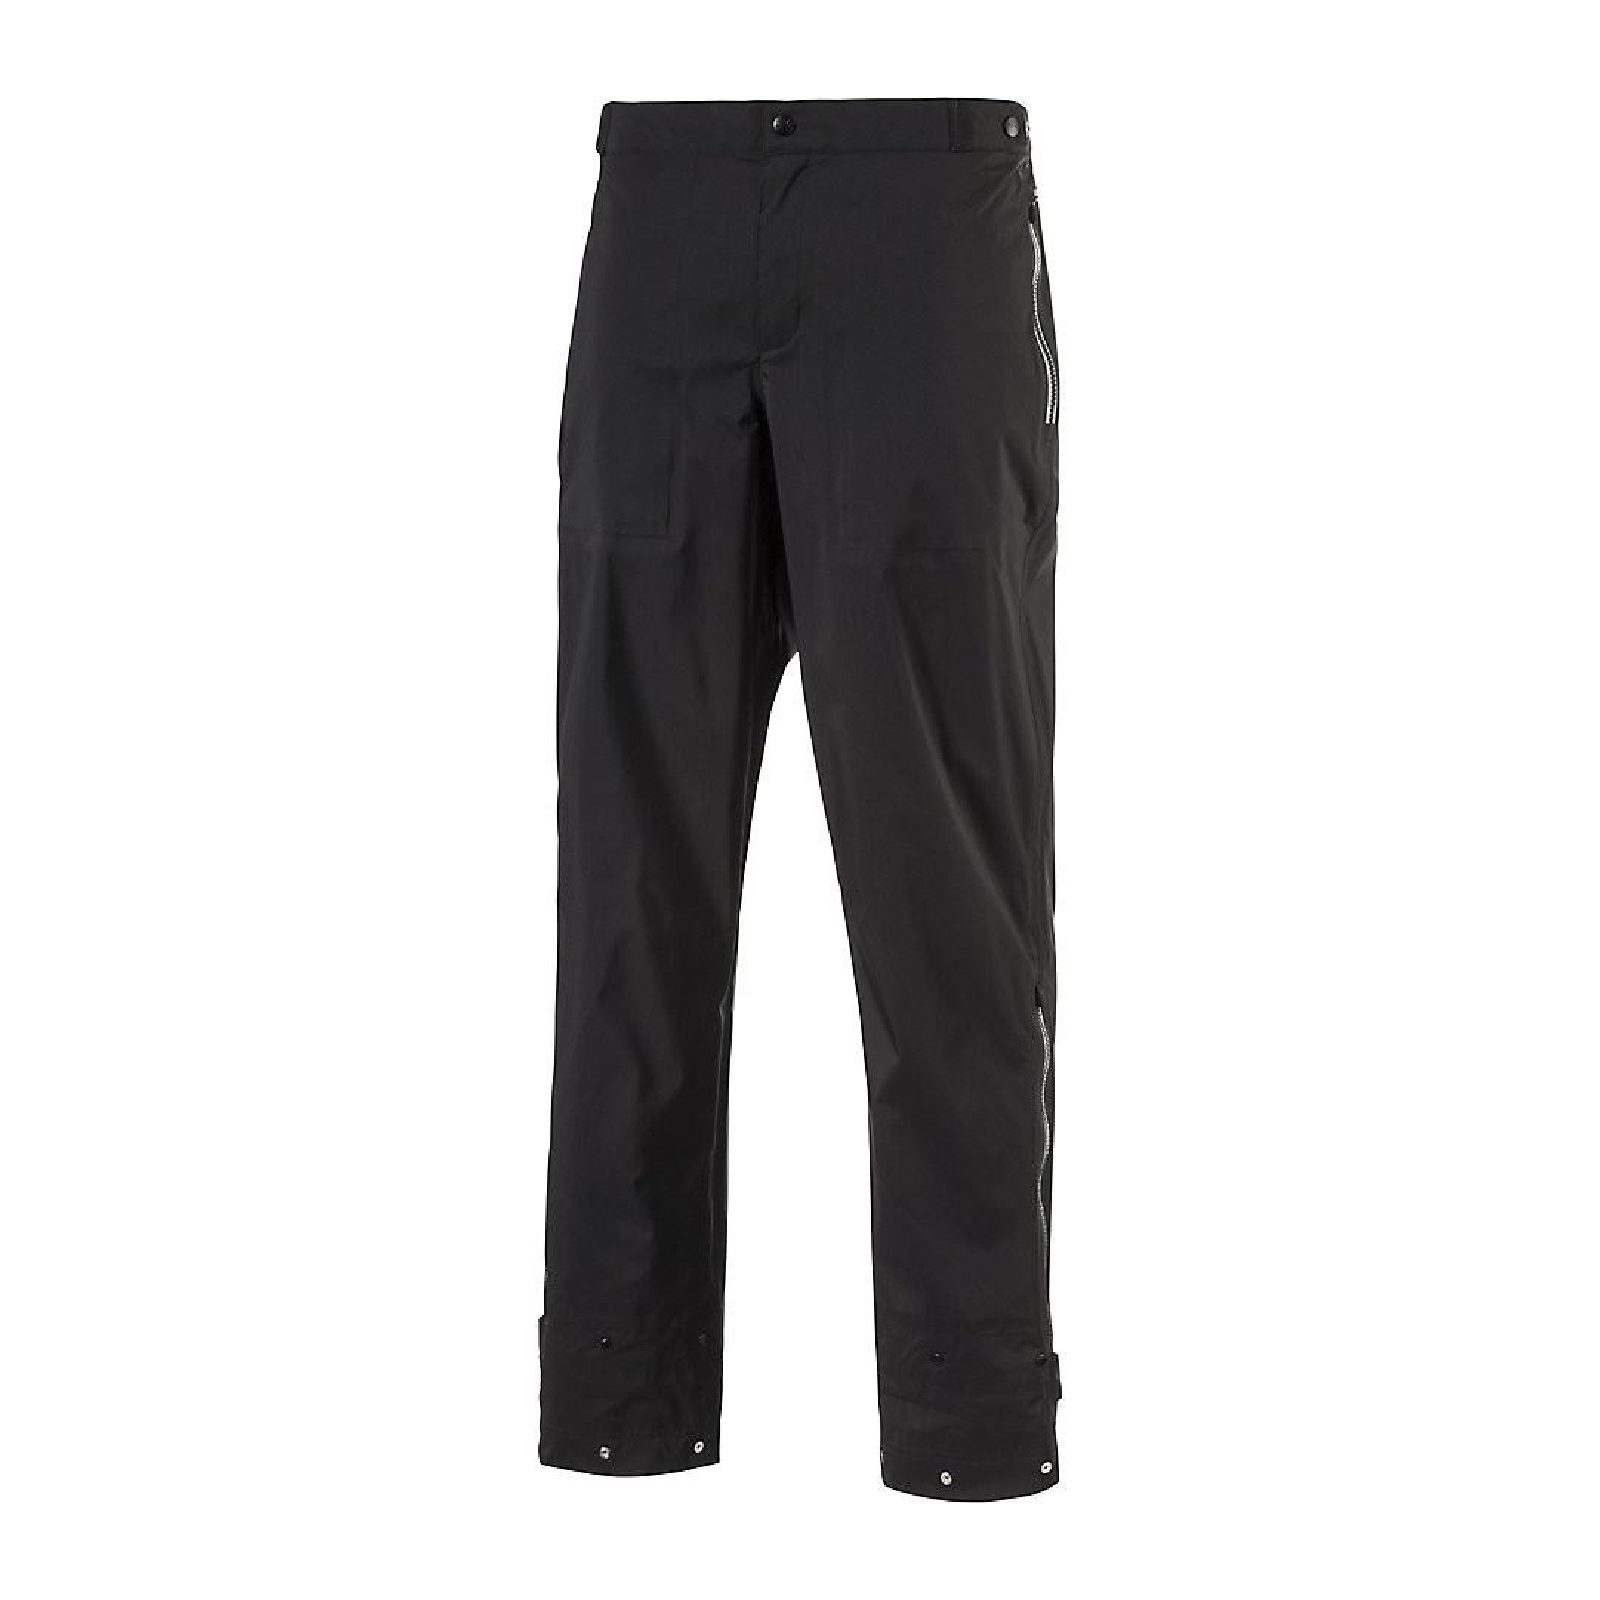 Puma Golf Storm Pant Pro Rainpants